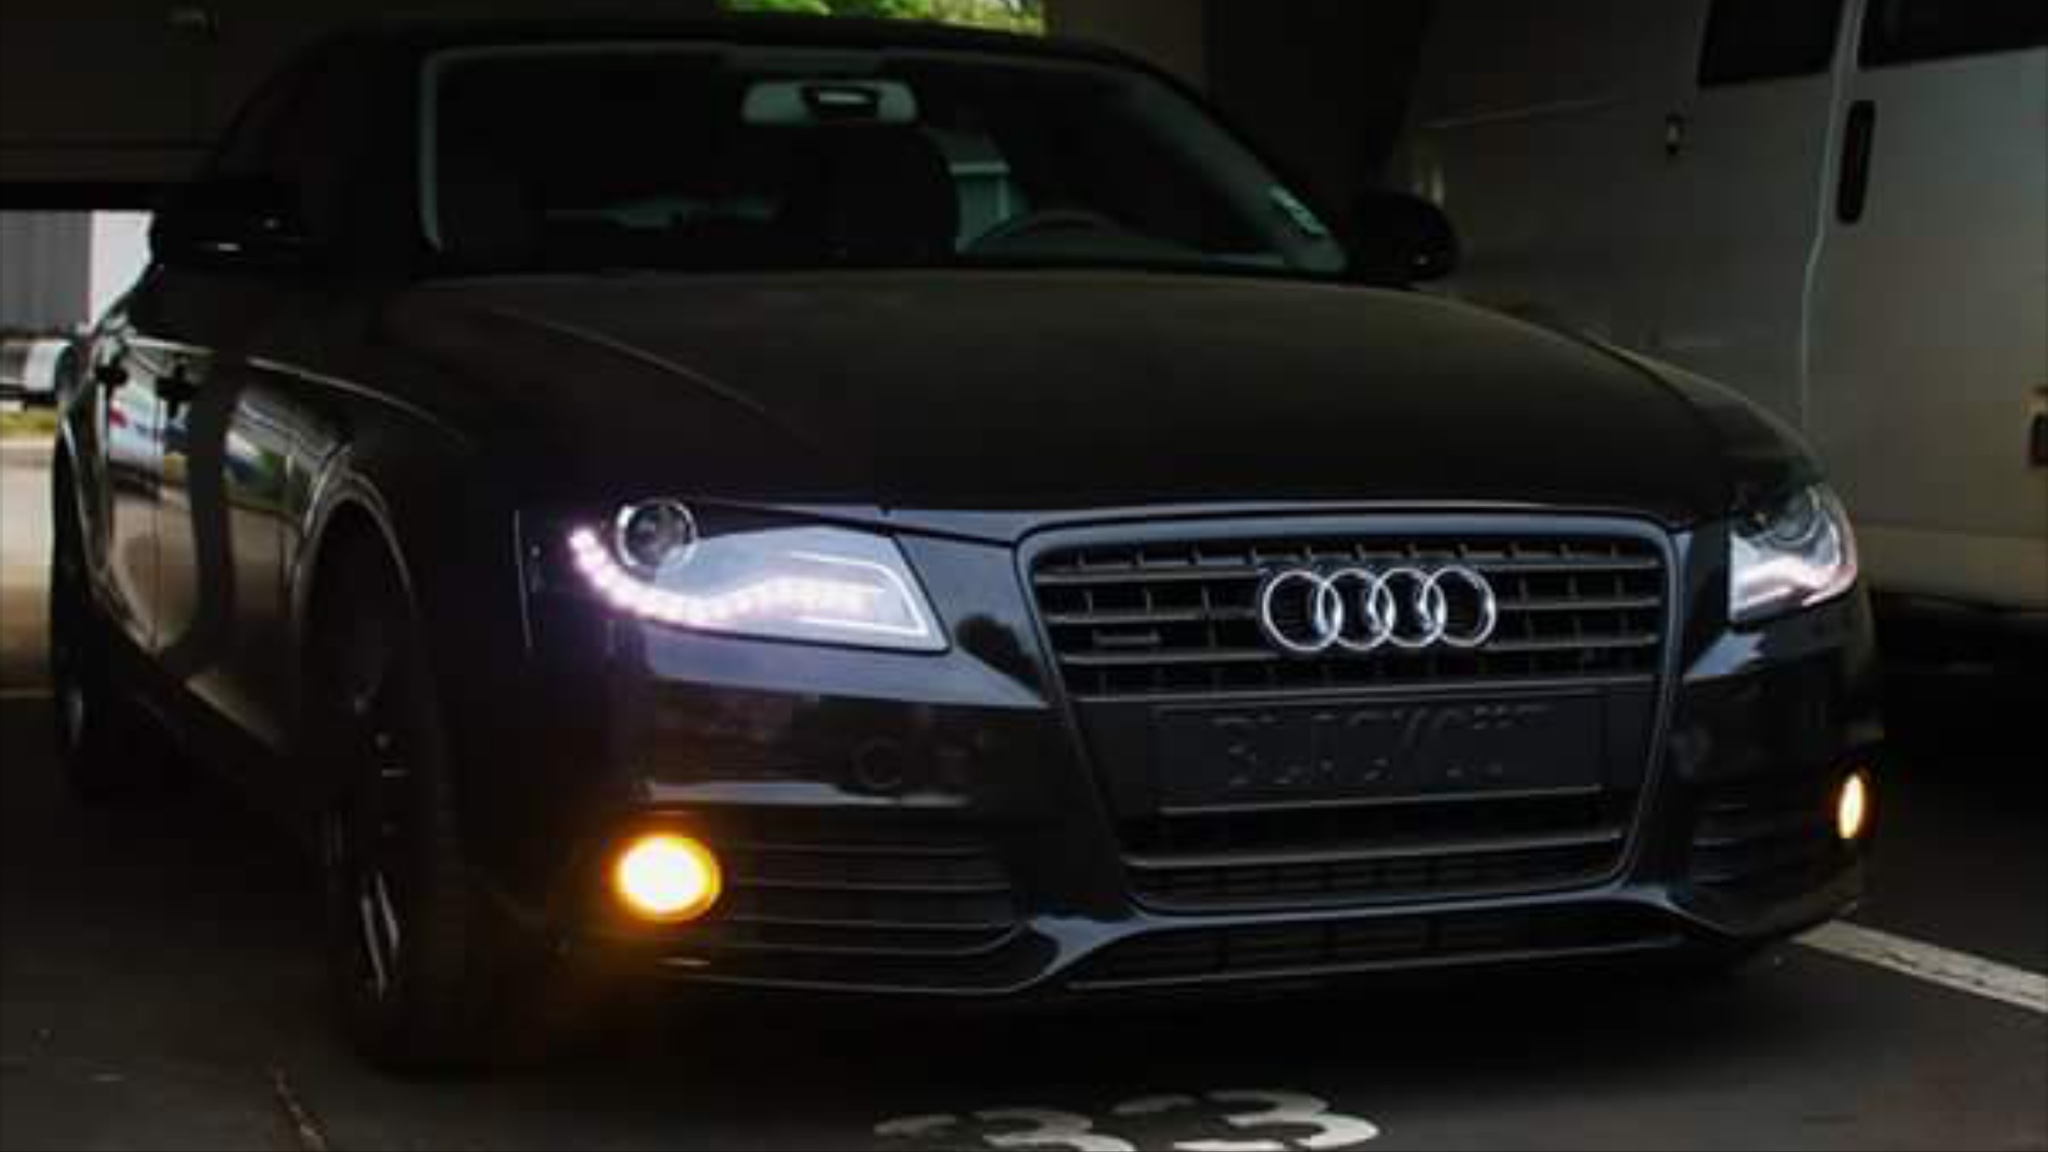 b8 b8 5 buyer s guide and looking to buy question thread rh audizine com Audi A4 Lights 2011 Audi A4 Premium Plus